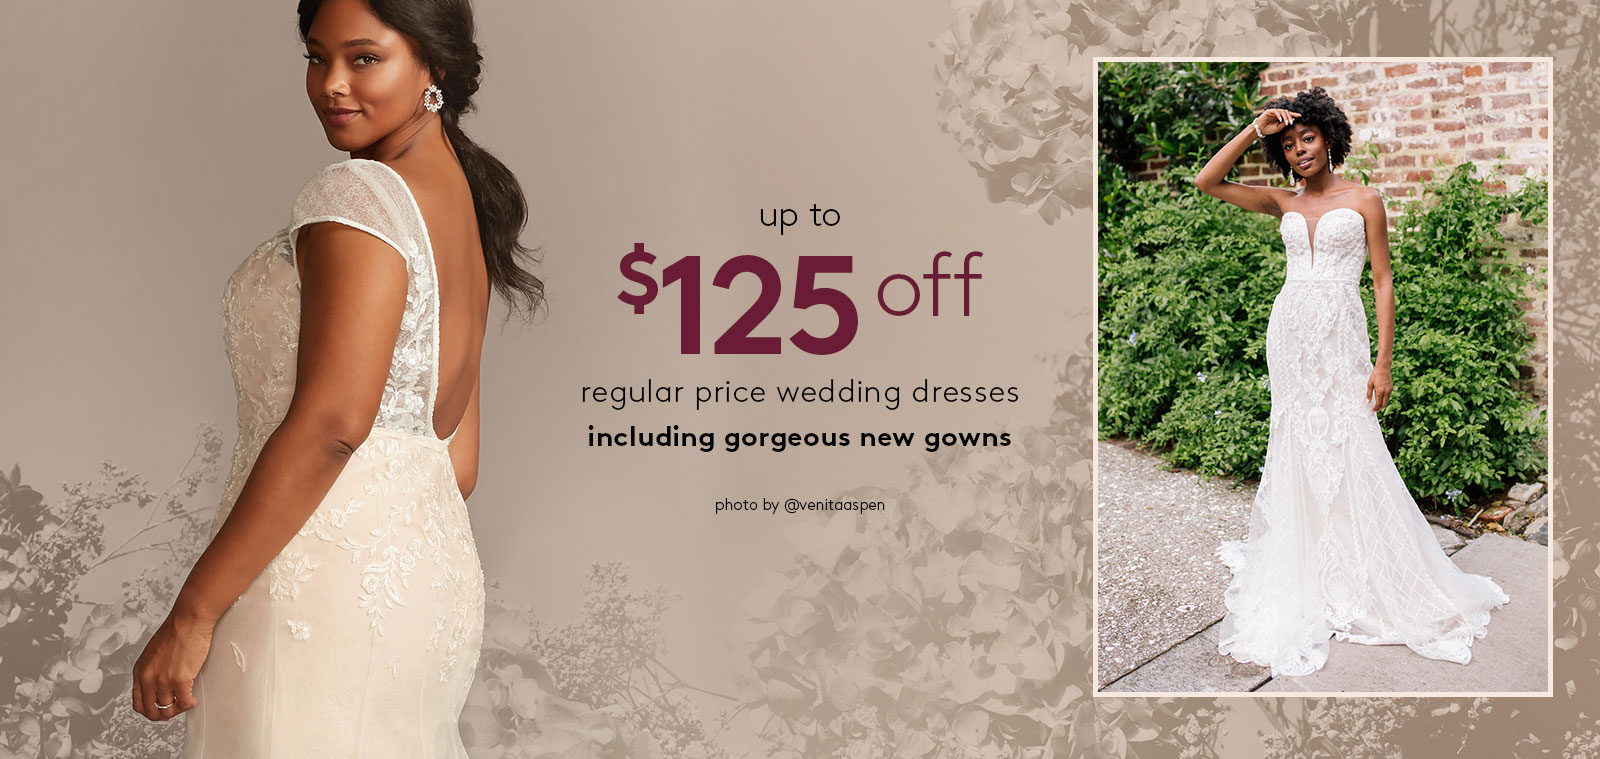 up to $125 off regular price wedding dresses including gorgeous new gowns